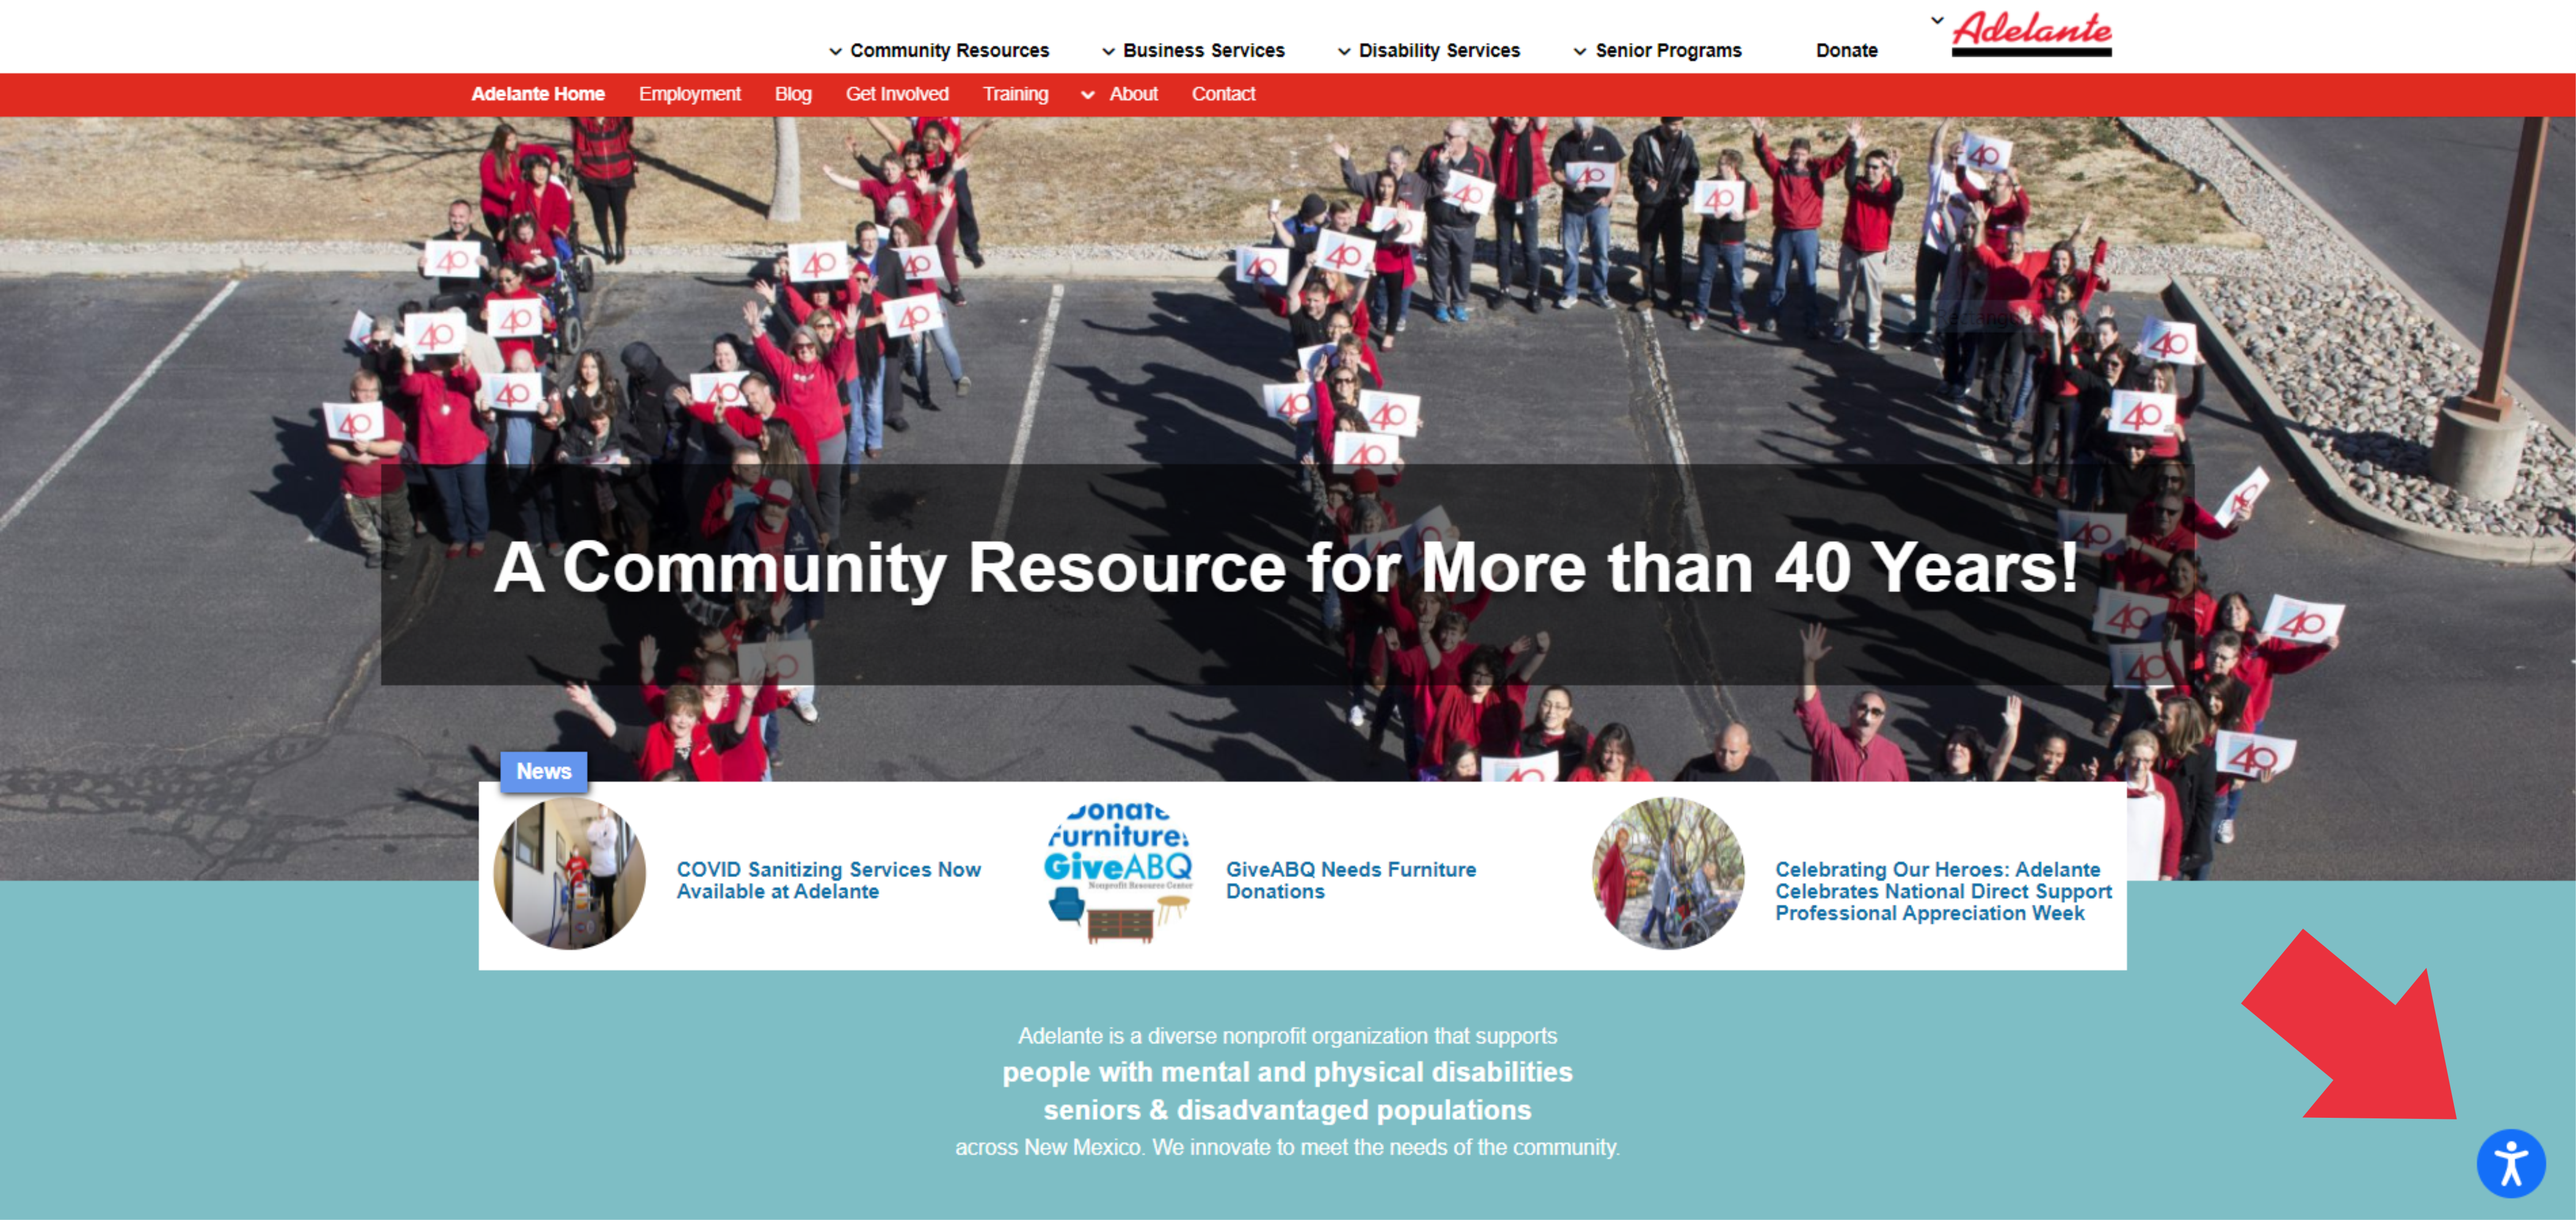 This is a screenshot of the GoAdelante.org webpage, with a red arrow pointing to the AccessiBe icon in the bottom right-hand corner of the page. This can help make the internet accessible to all!